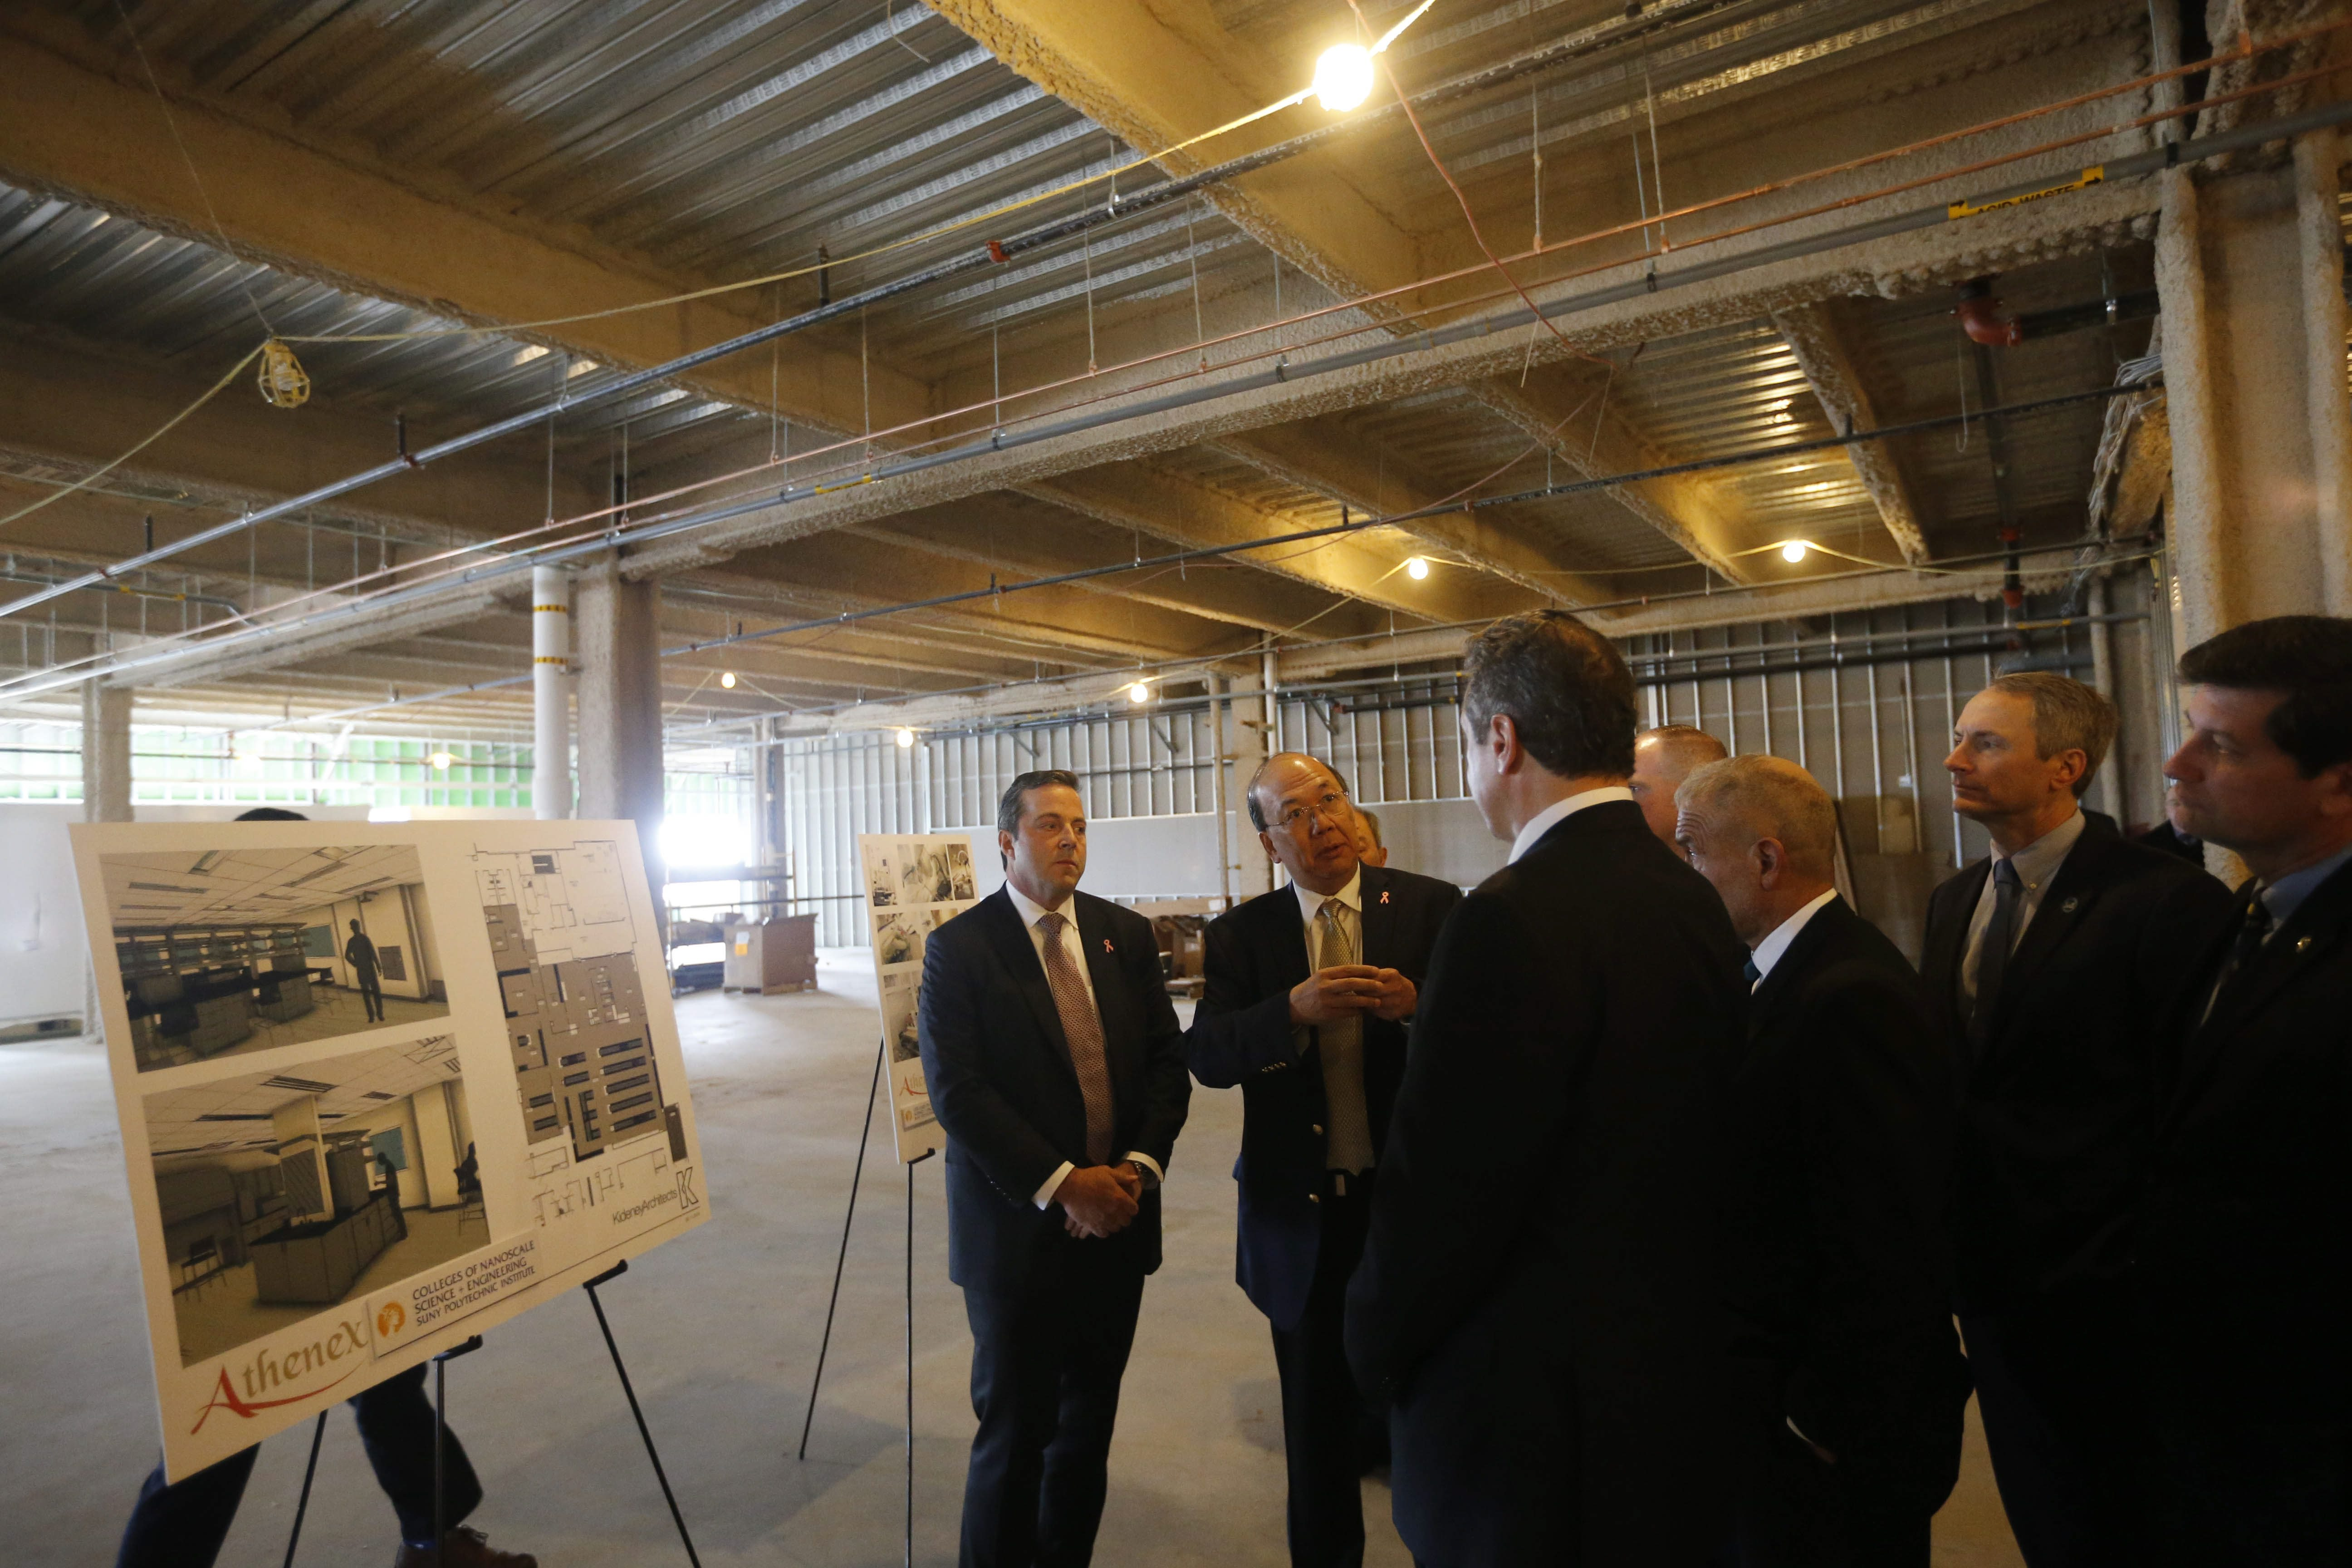 Athenex CEO Johnson Y. N. Lau, center, speaks with Gov. Andrew Cuomo and Assemblyman Sean Ryan during a construction tour of the new Athenex facility at Conventus in 2016. Also shown is Flint D. Besecker, left, who was then Athenex COO and CFO. Besecker has since left the company. (Derek Gee/Buffalo News)